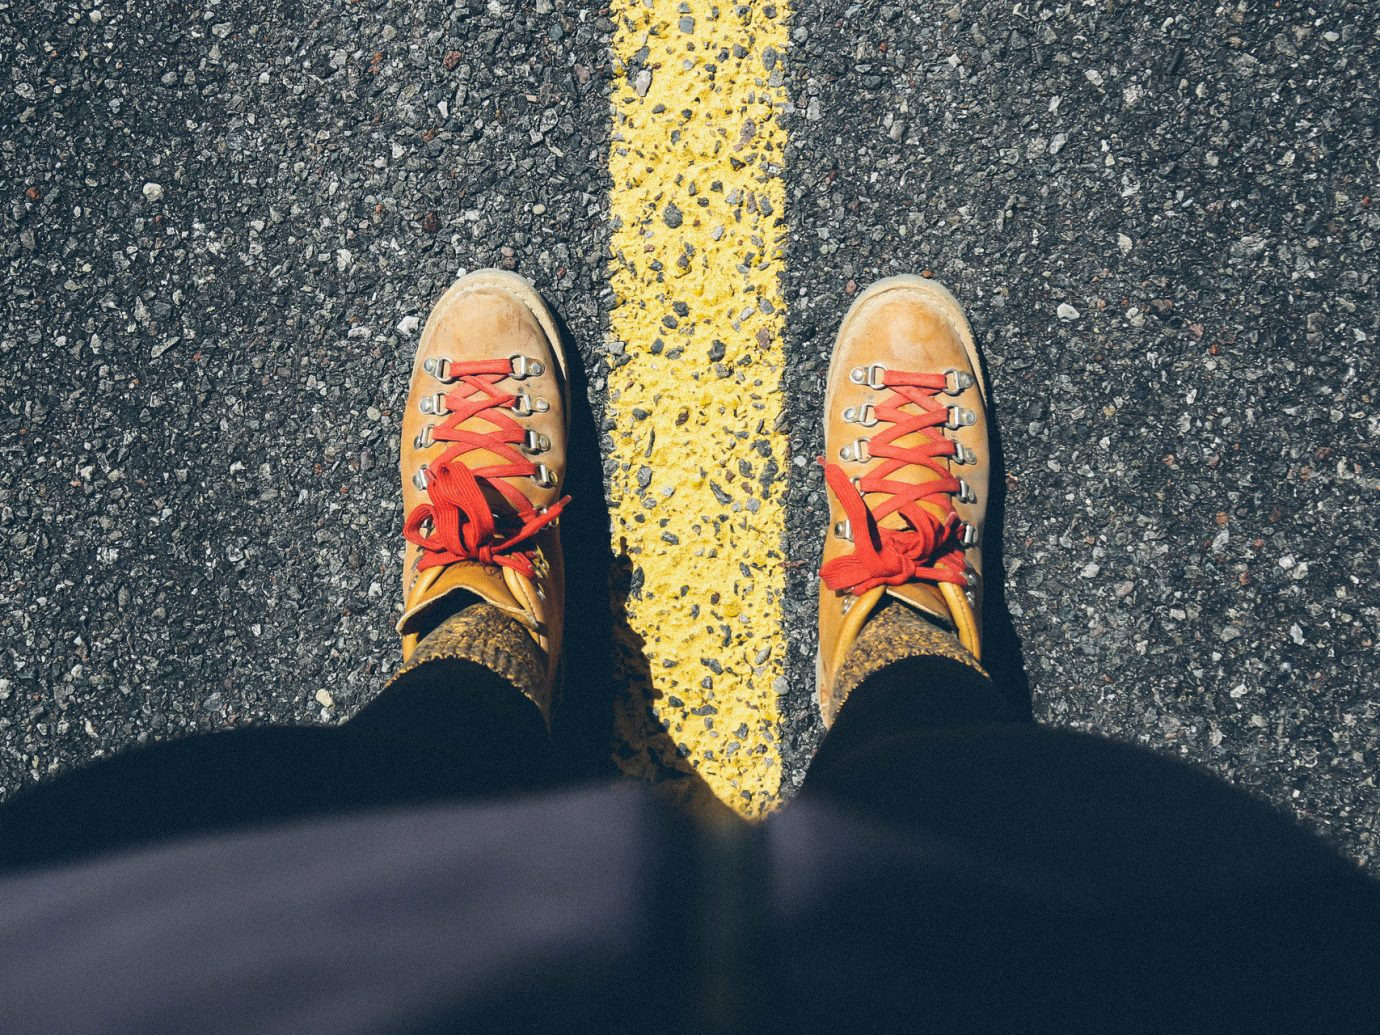 Influencers + Tastemakers Jetsetter Guides Road Trips Travel Lifestyle color person black red yellow outdoor feet footwear art hand macro photography shoes